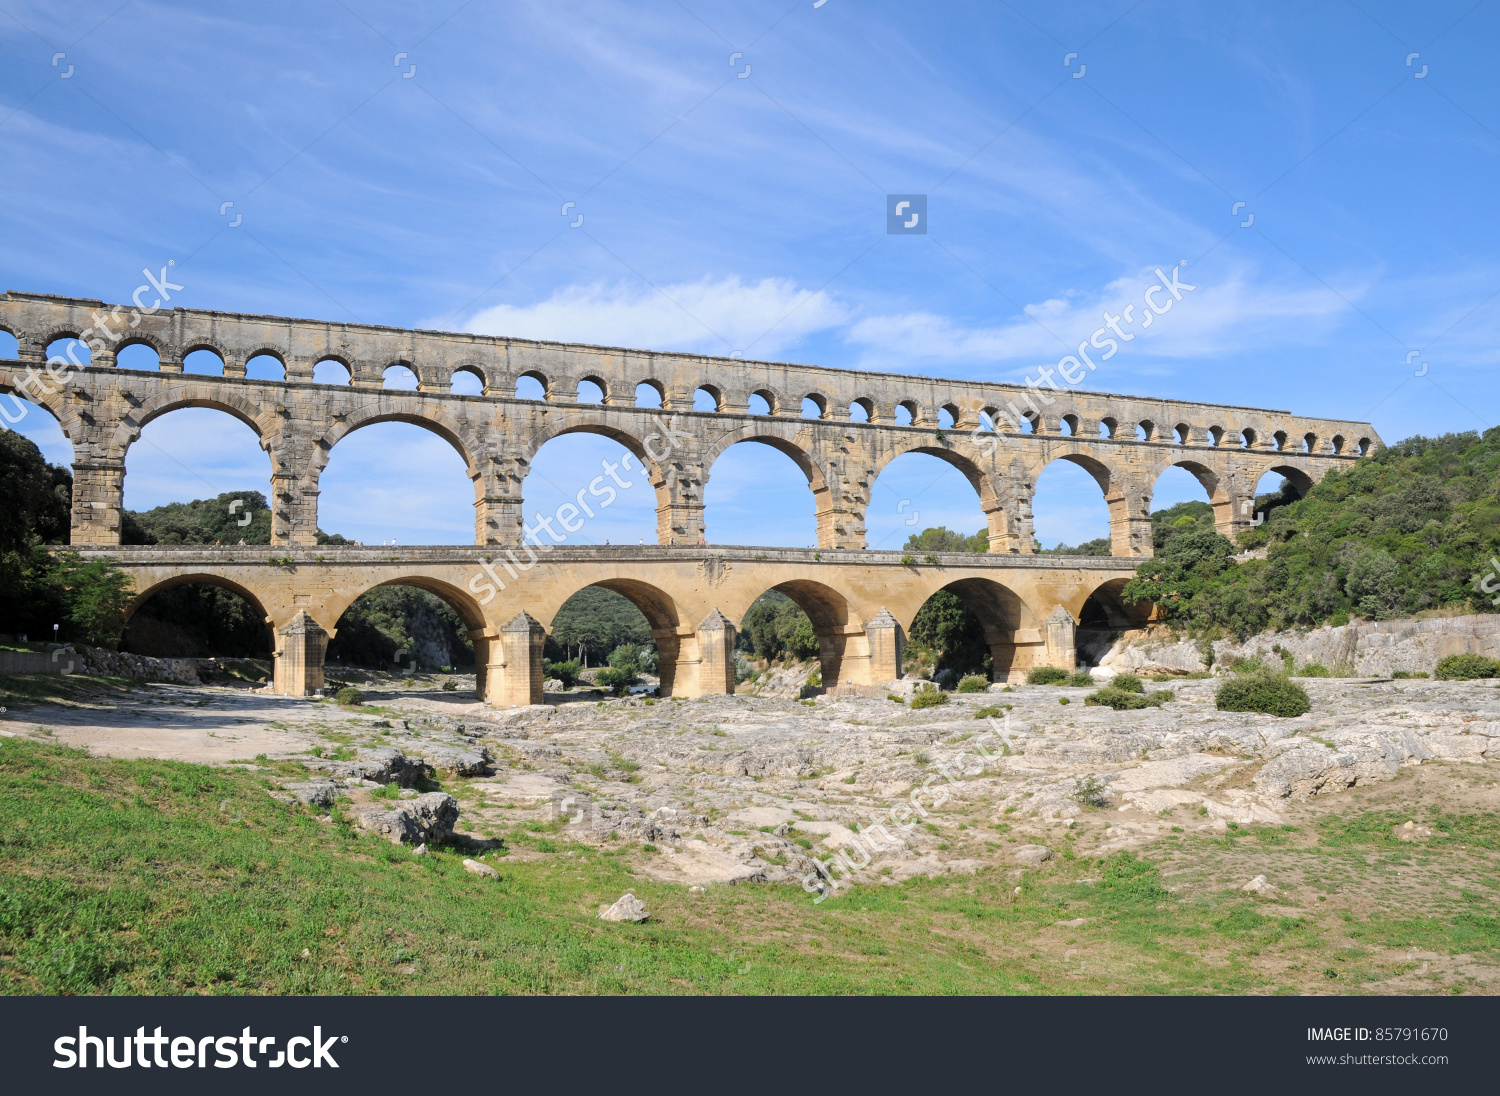 Ancient Roman Aqueduct Bridge Pont Du Gard Over Gard River Near.